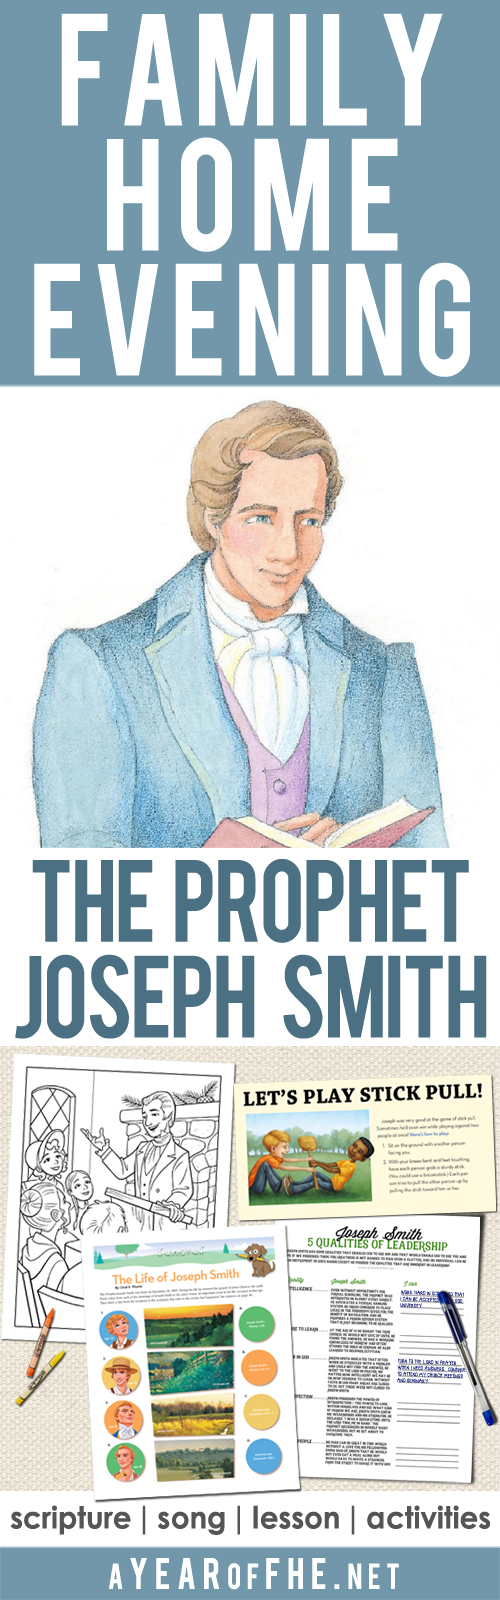 a year of fhe year 02 lesson 06 joseph smith 1st latter day prophet